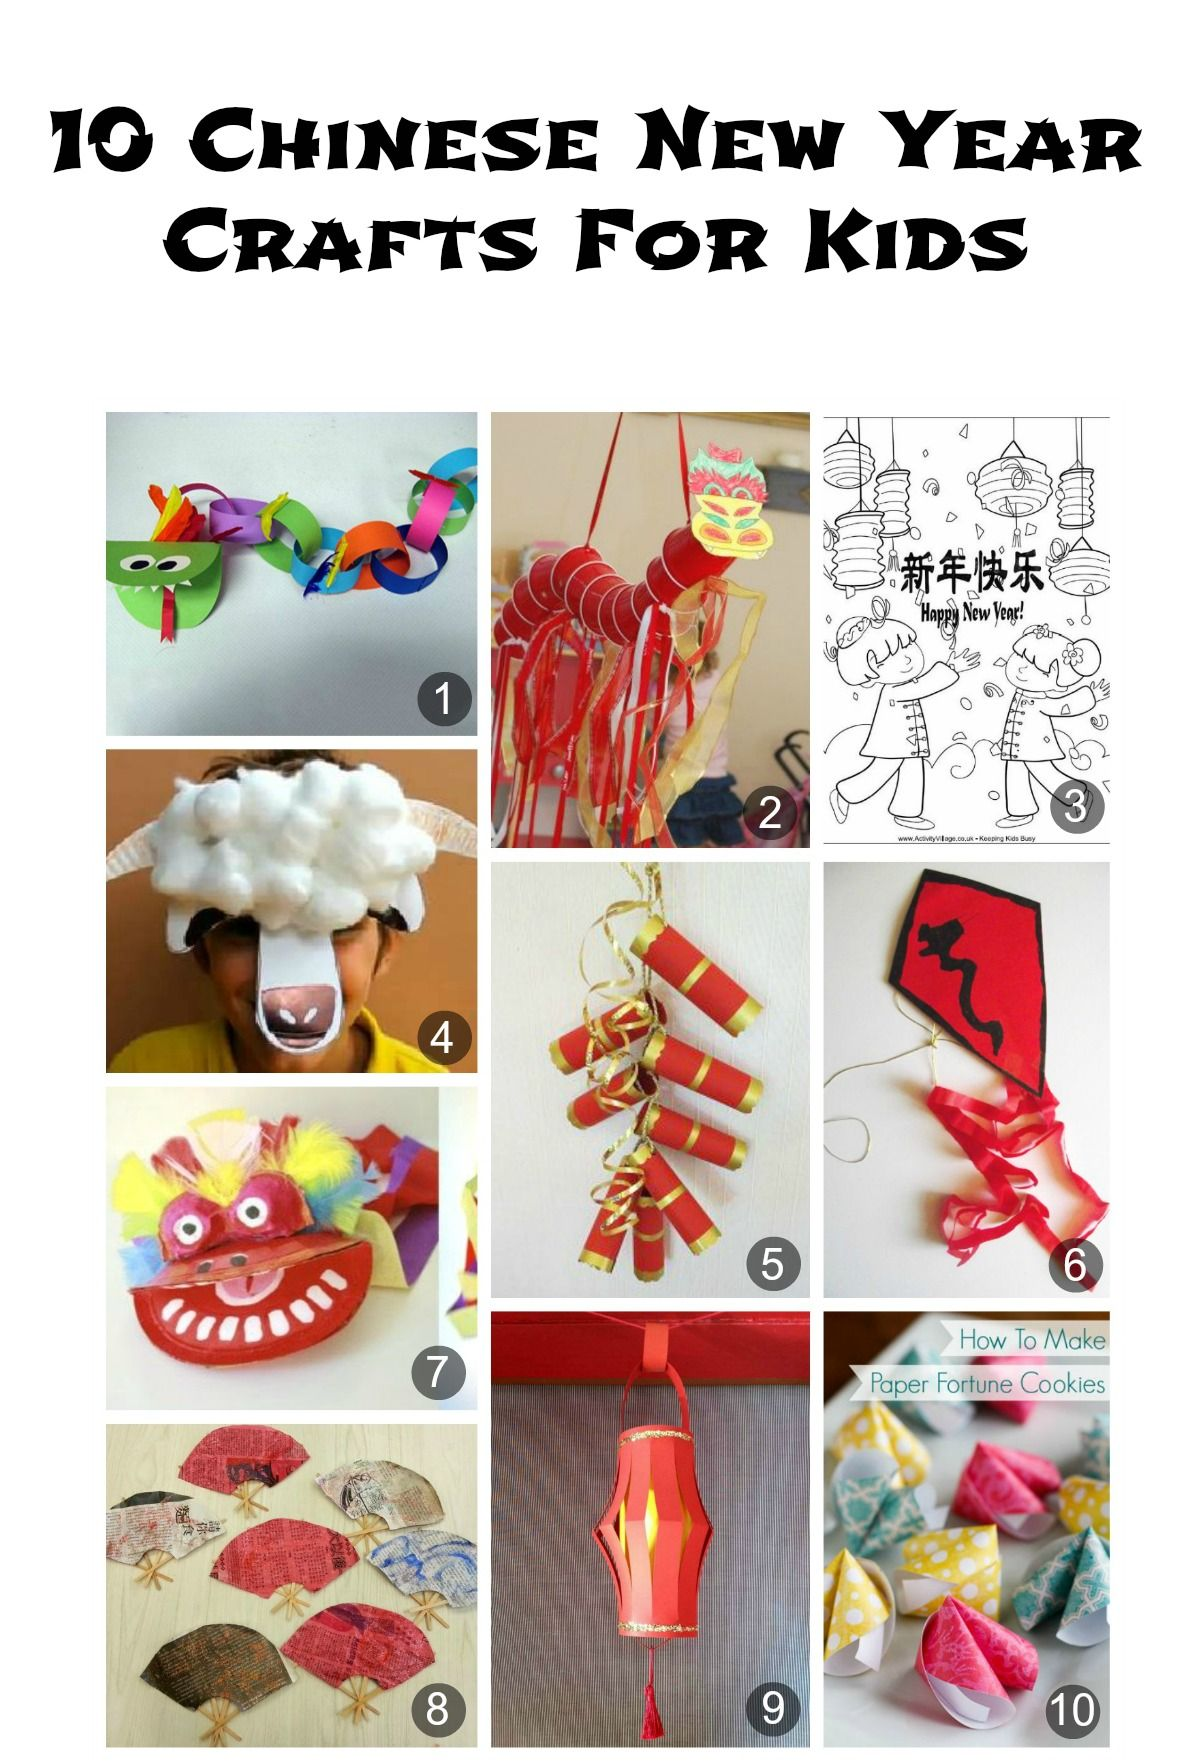 10 Chinese New Year Crafts For Kids Chinese New Year Crafts For Kids Crafts For Kids Chinese New Year Crafts